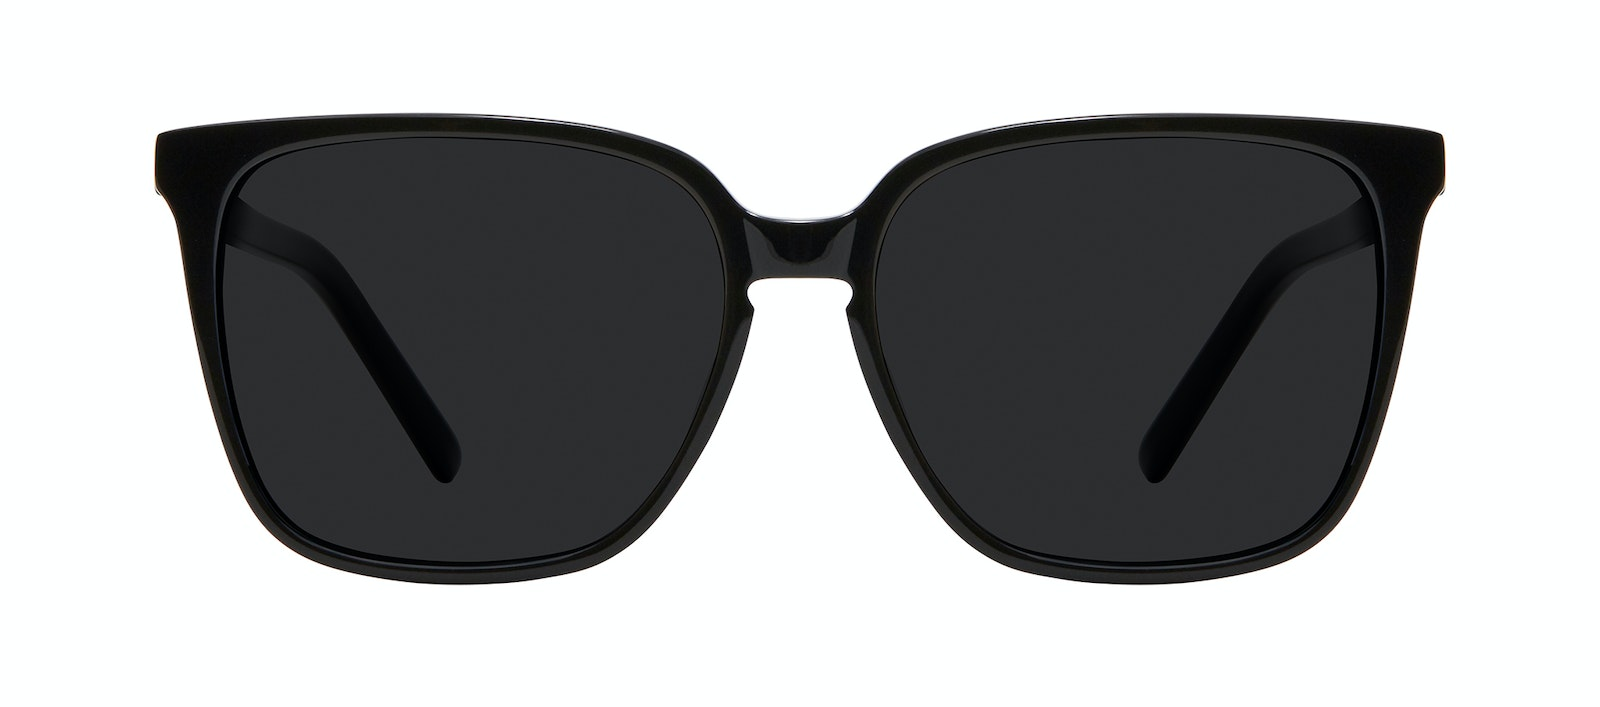 Affordable Fashion Glasses Square Sunglasses Women Runway L Black Front